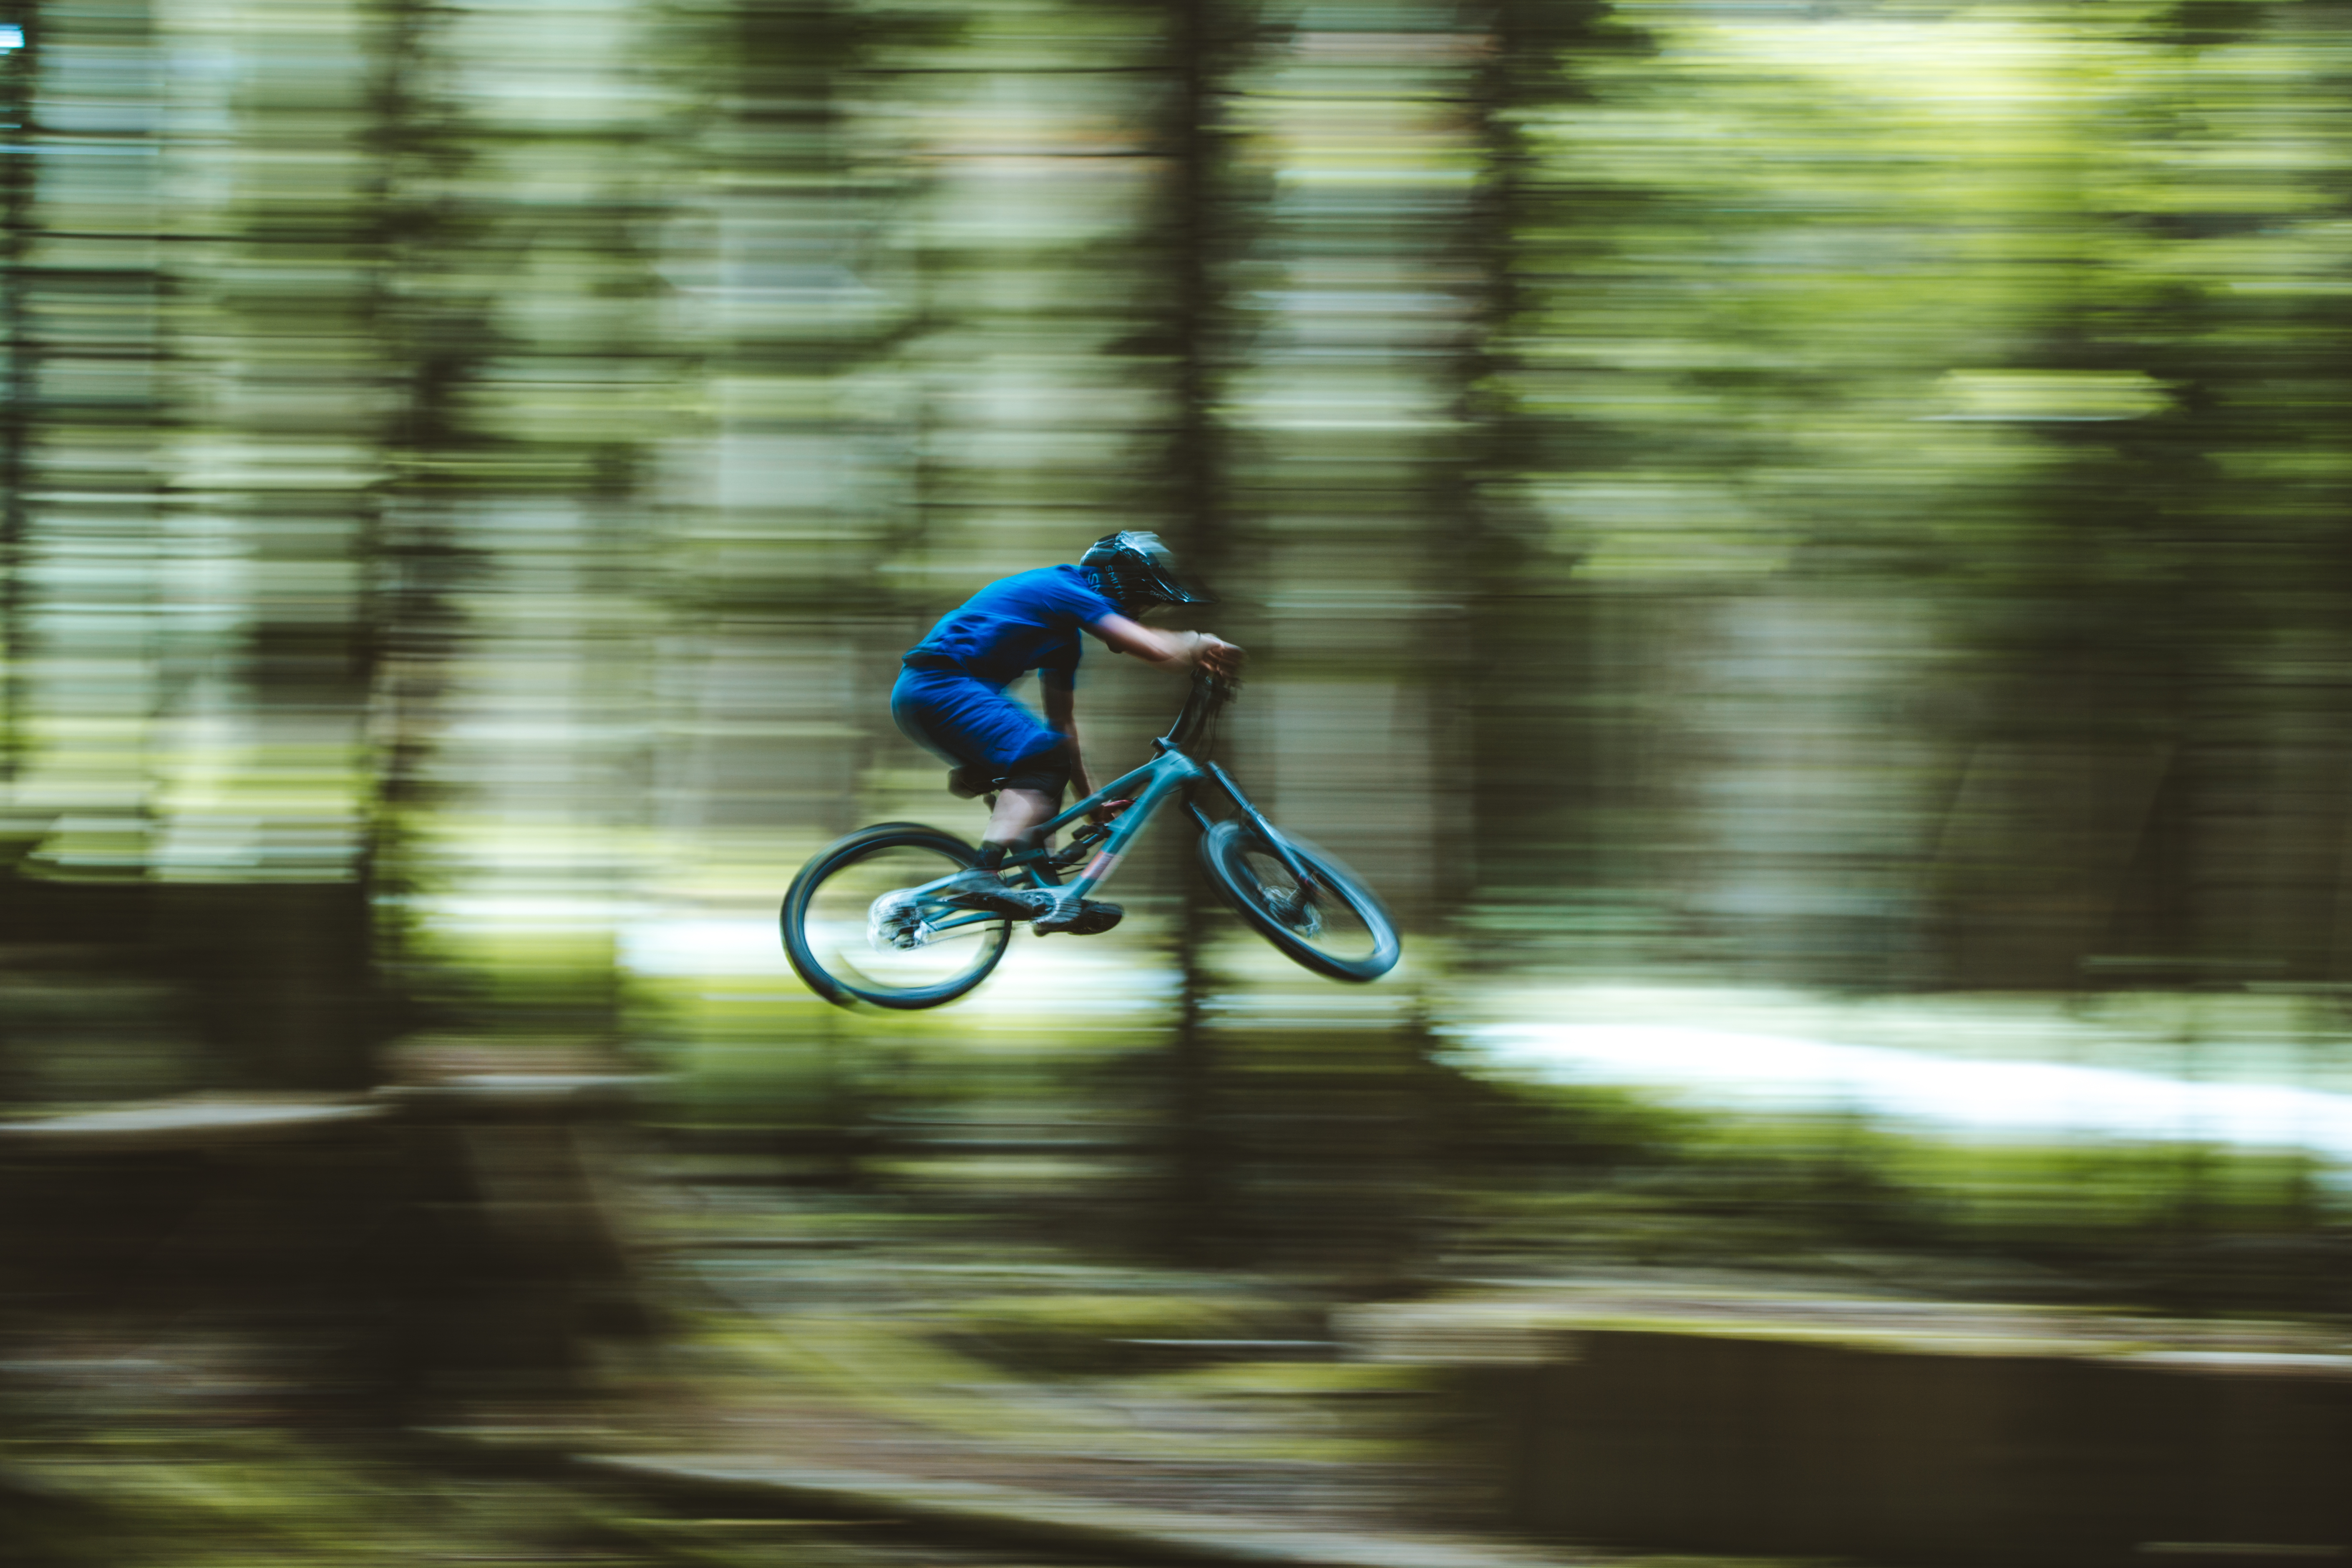 Mike Hopkins rides the Mission Carbon mountain bike.